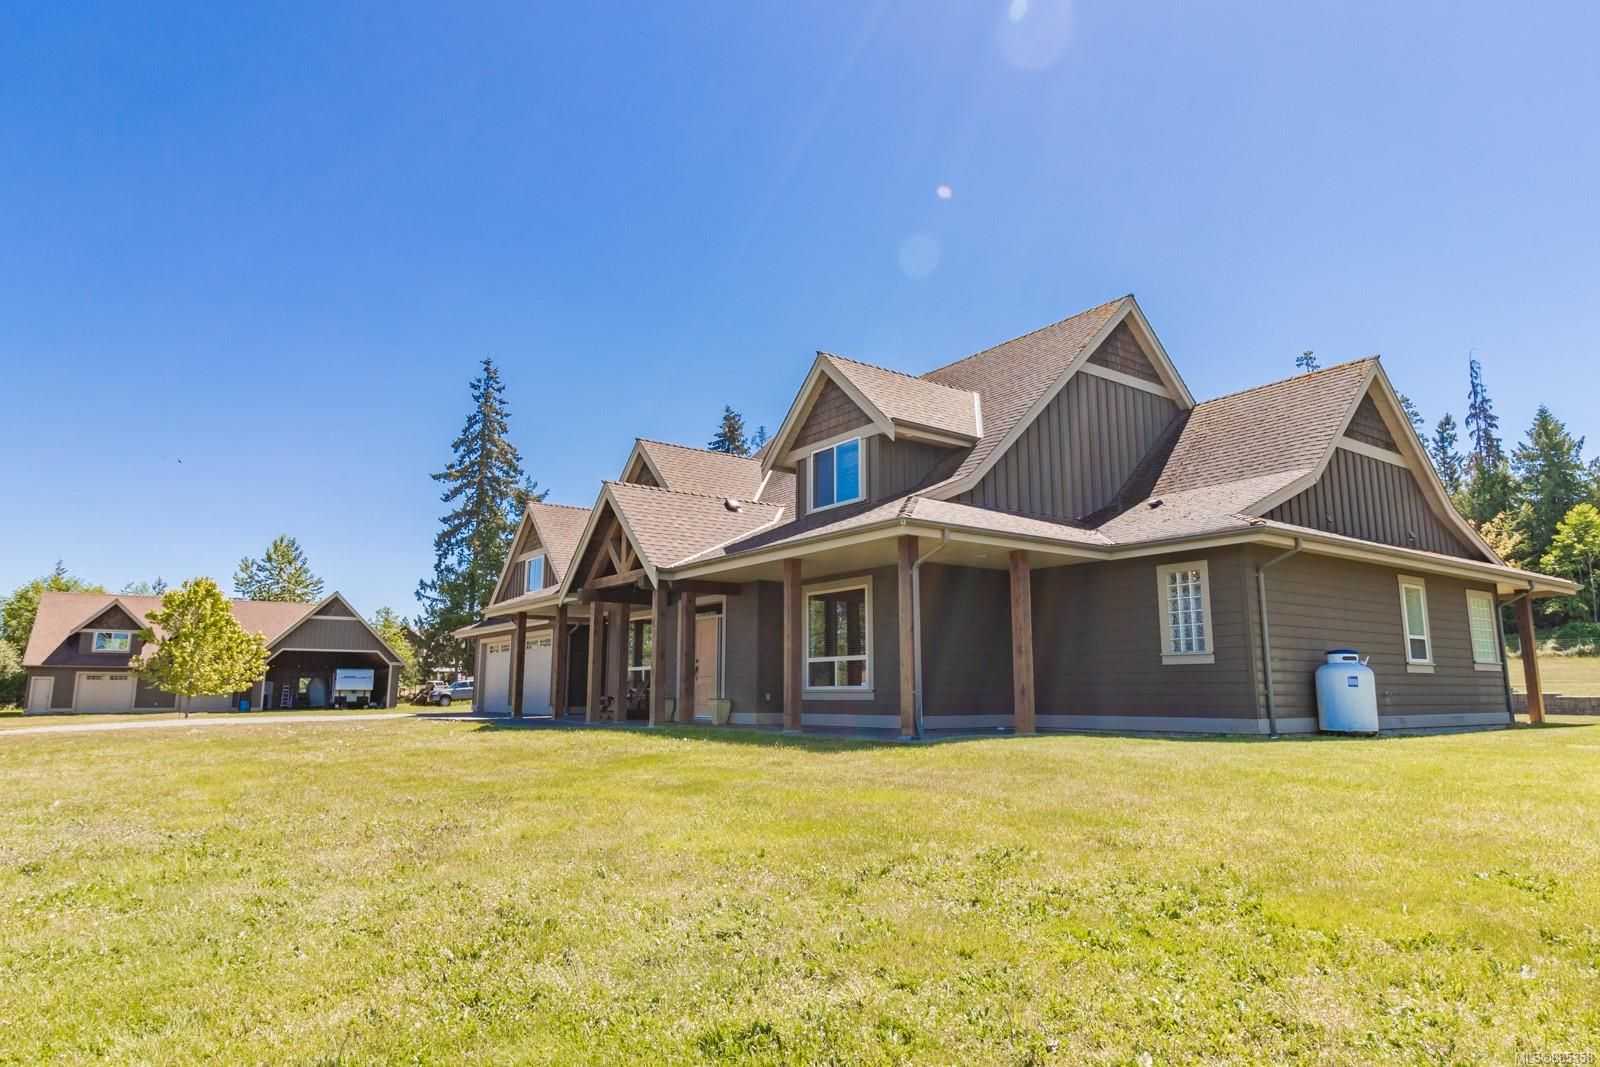 Photo 48: Photos: 2850 Peters Rd in : PQ Qualicum Beach House for sale (Parksville/Qualicum)  : MLS®# 885358